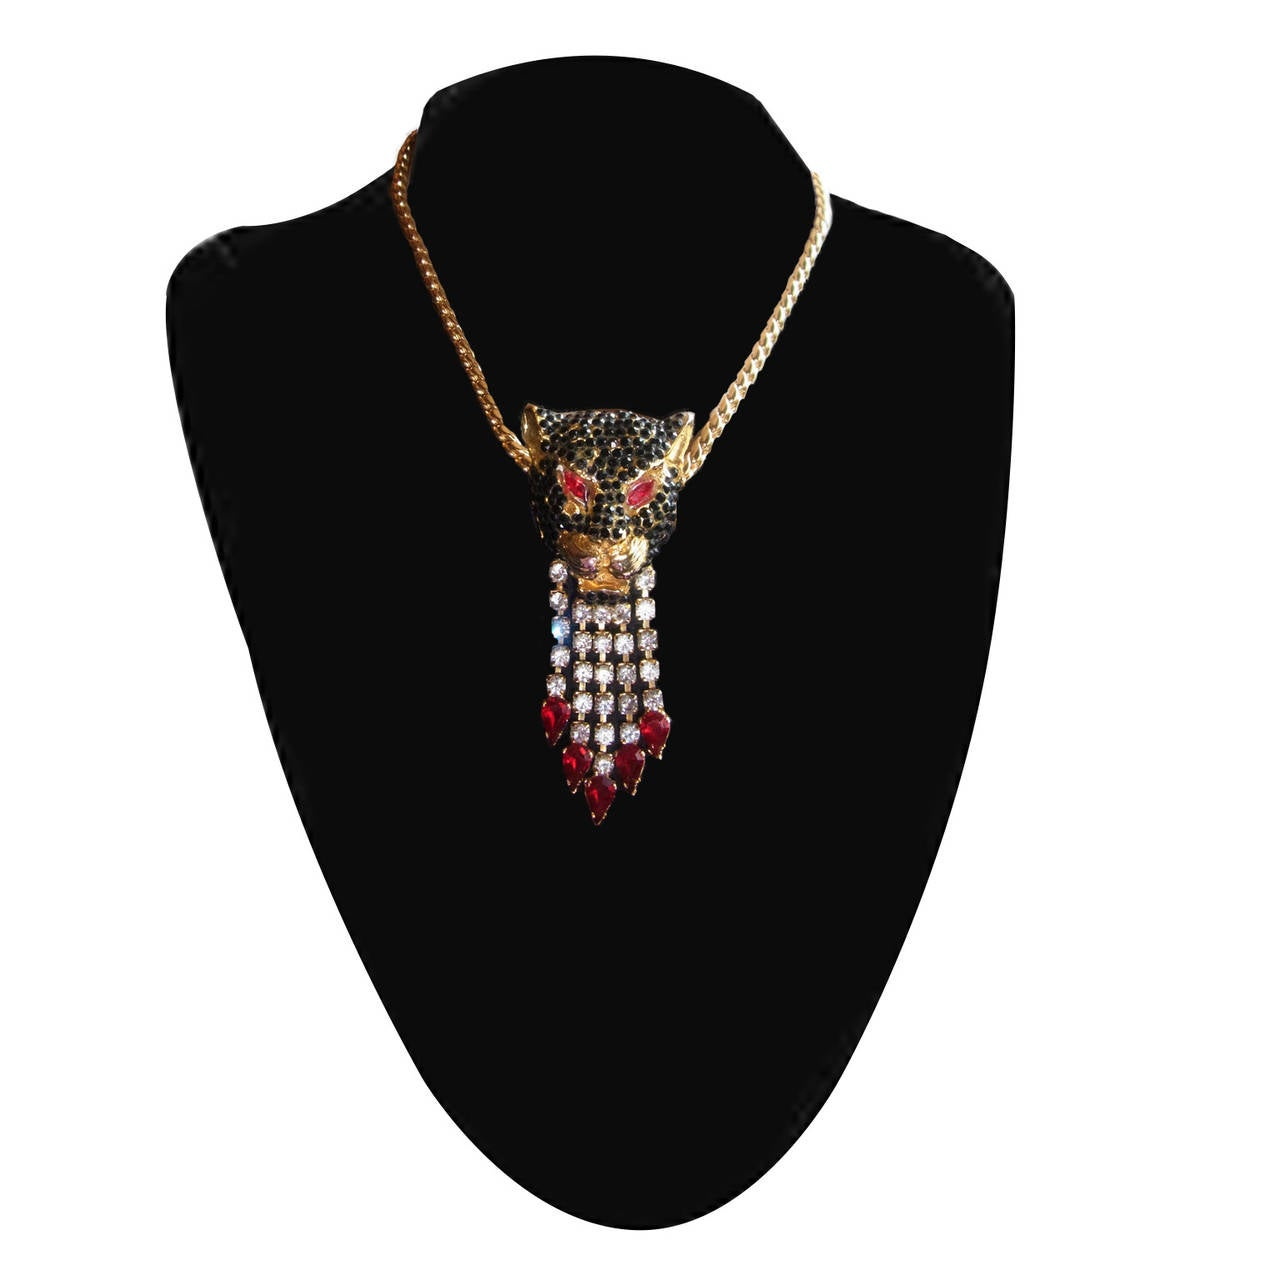 Gianni Versace Black Panther Pendent Head Clip 1990's In Excellent Condition For Sale In Berlin, DE